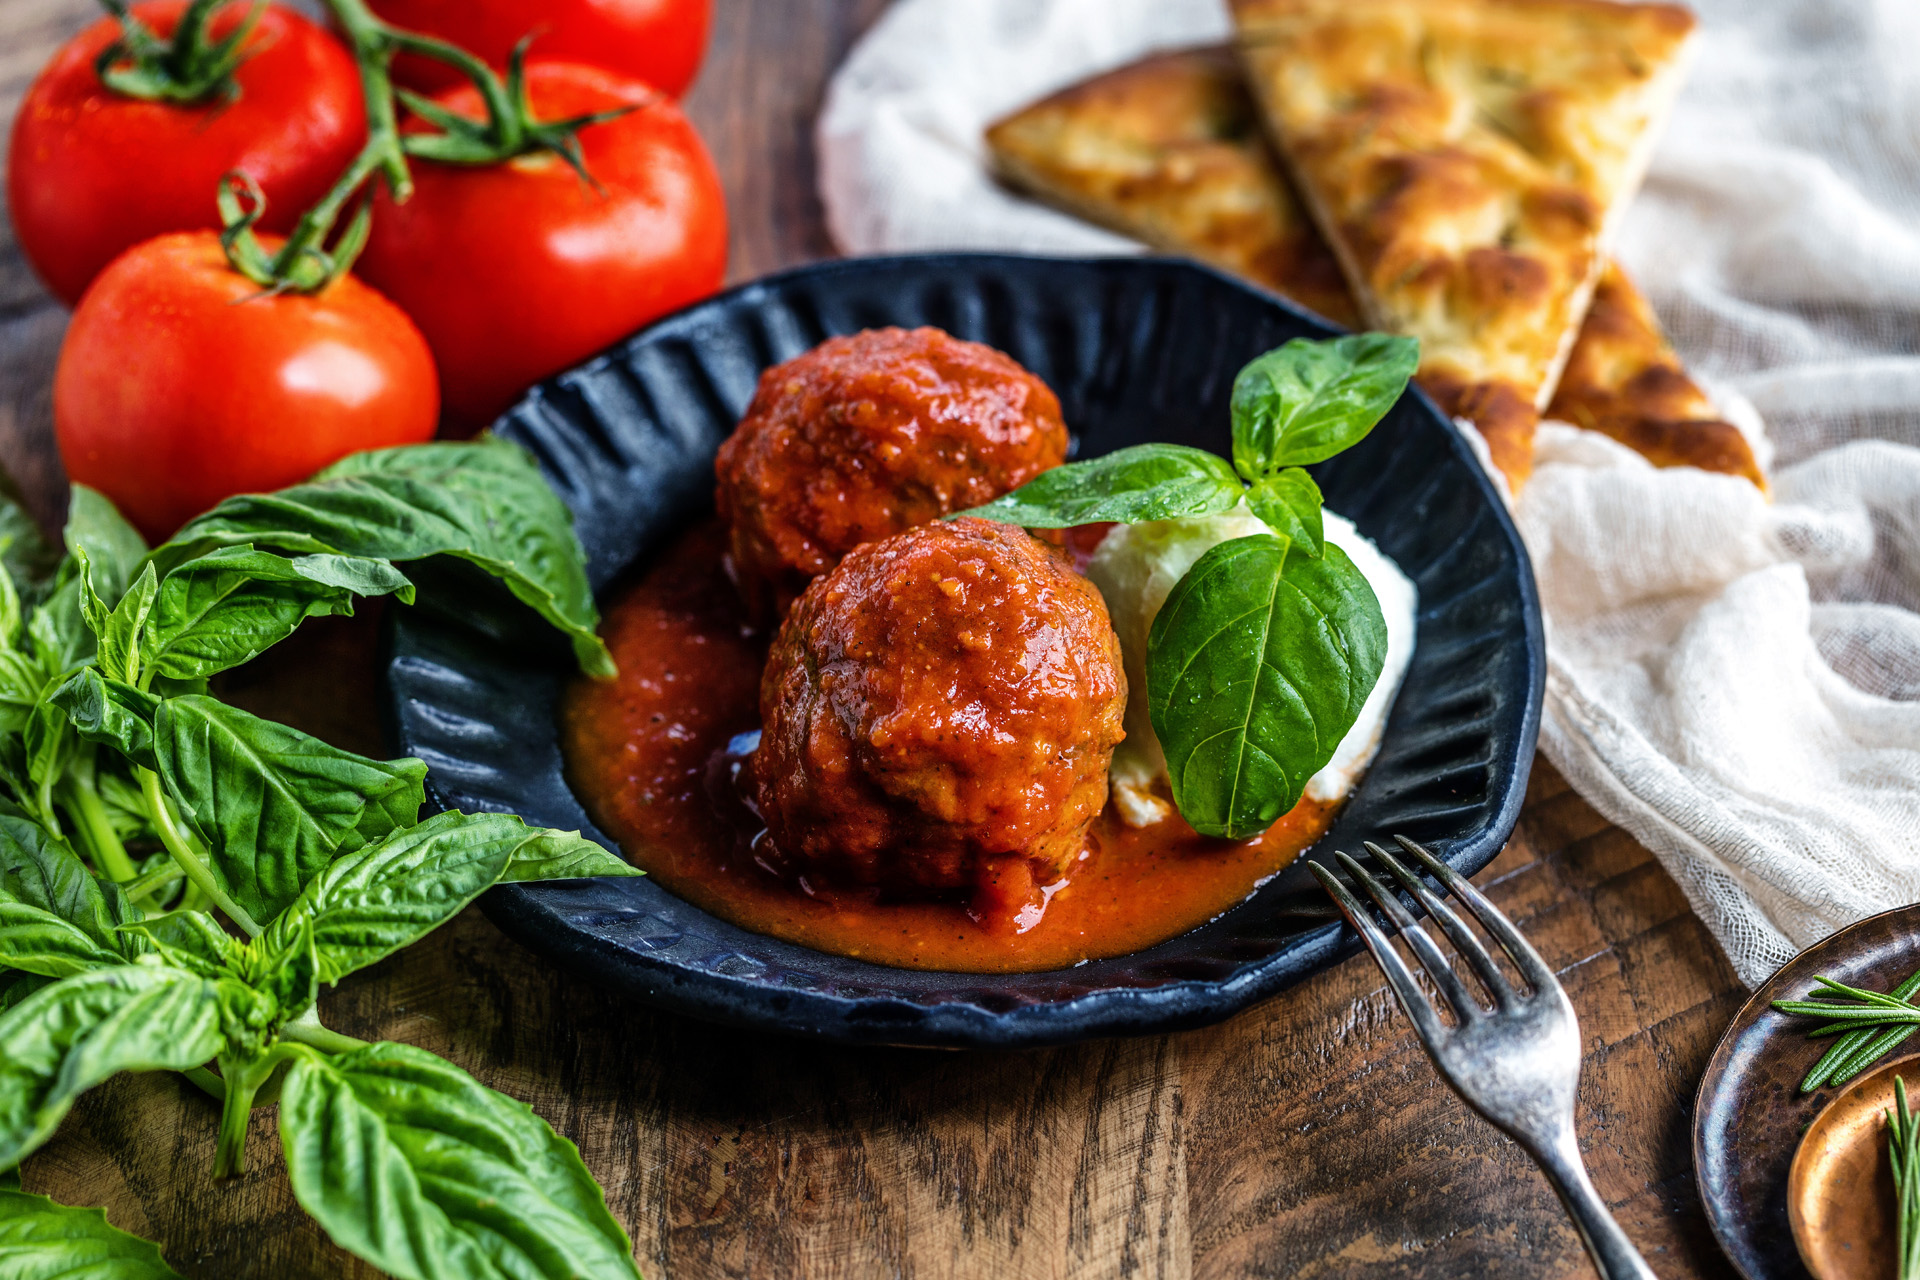 Fort_Lauderdale_Food_Stylist_Meatballs